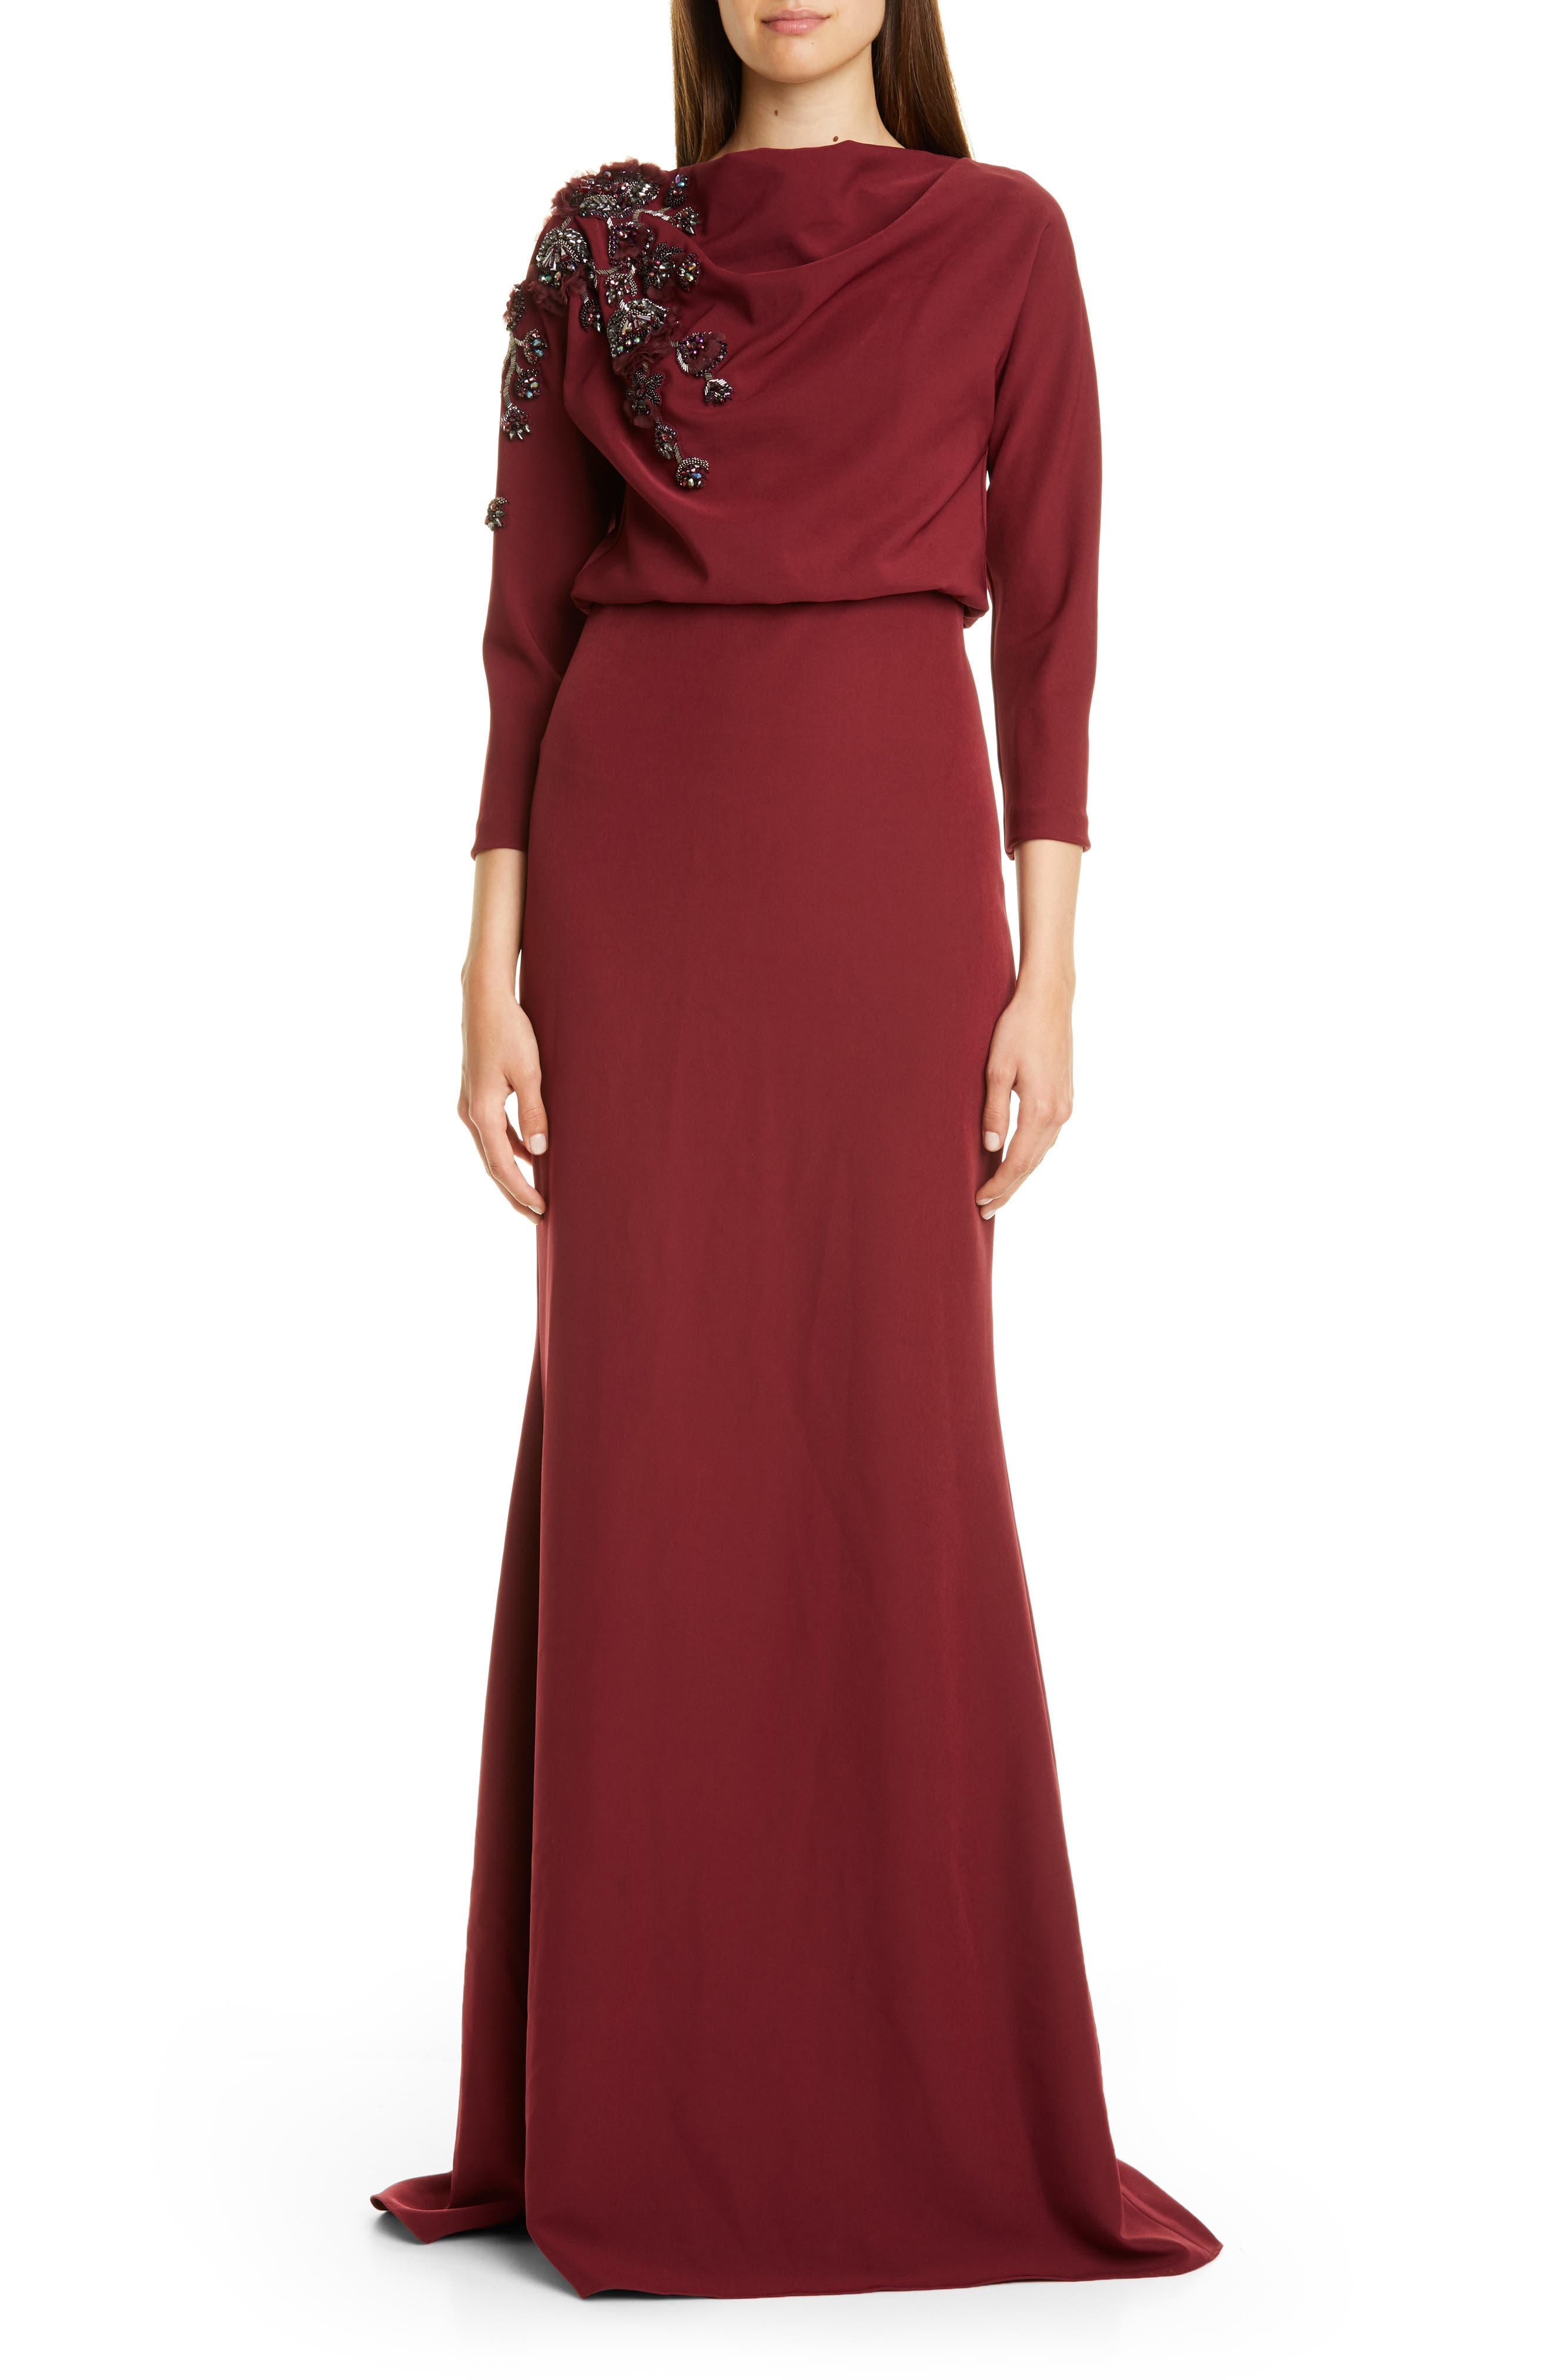 Badgley Mischka Couture Embellished Drape Bodice Gown, Burgundy